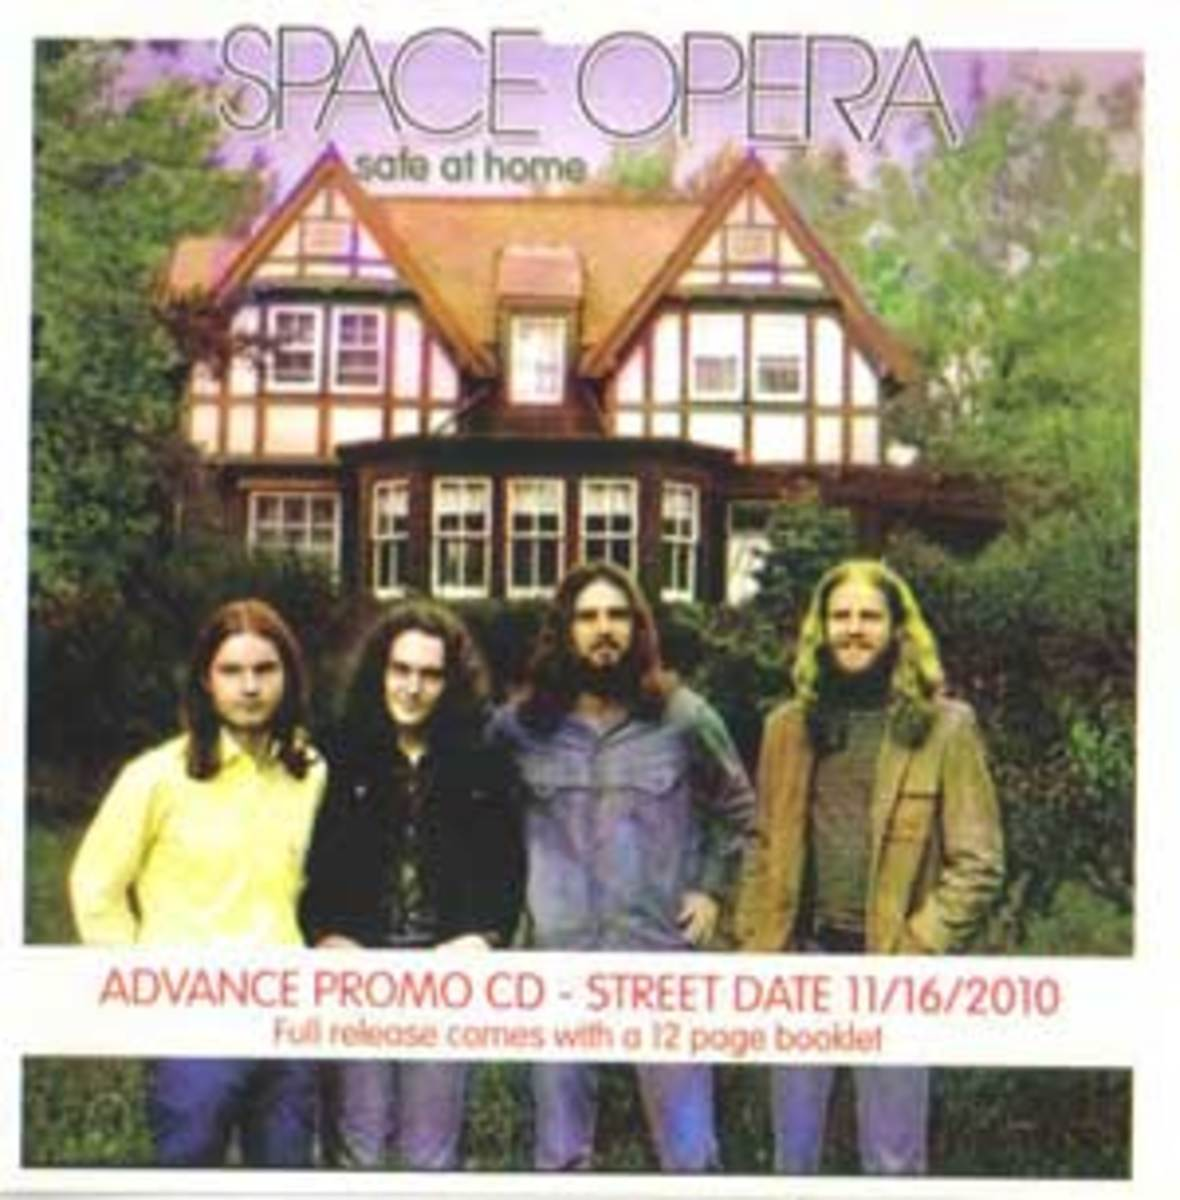 SpaceOperaSafeAtHomeCover